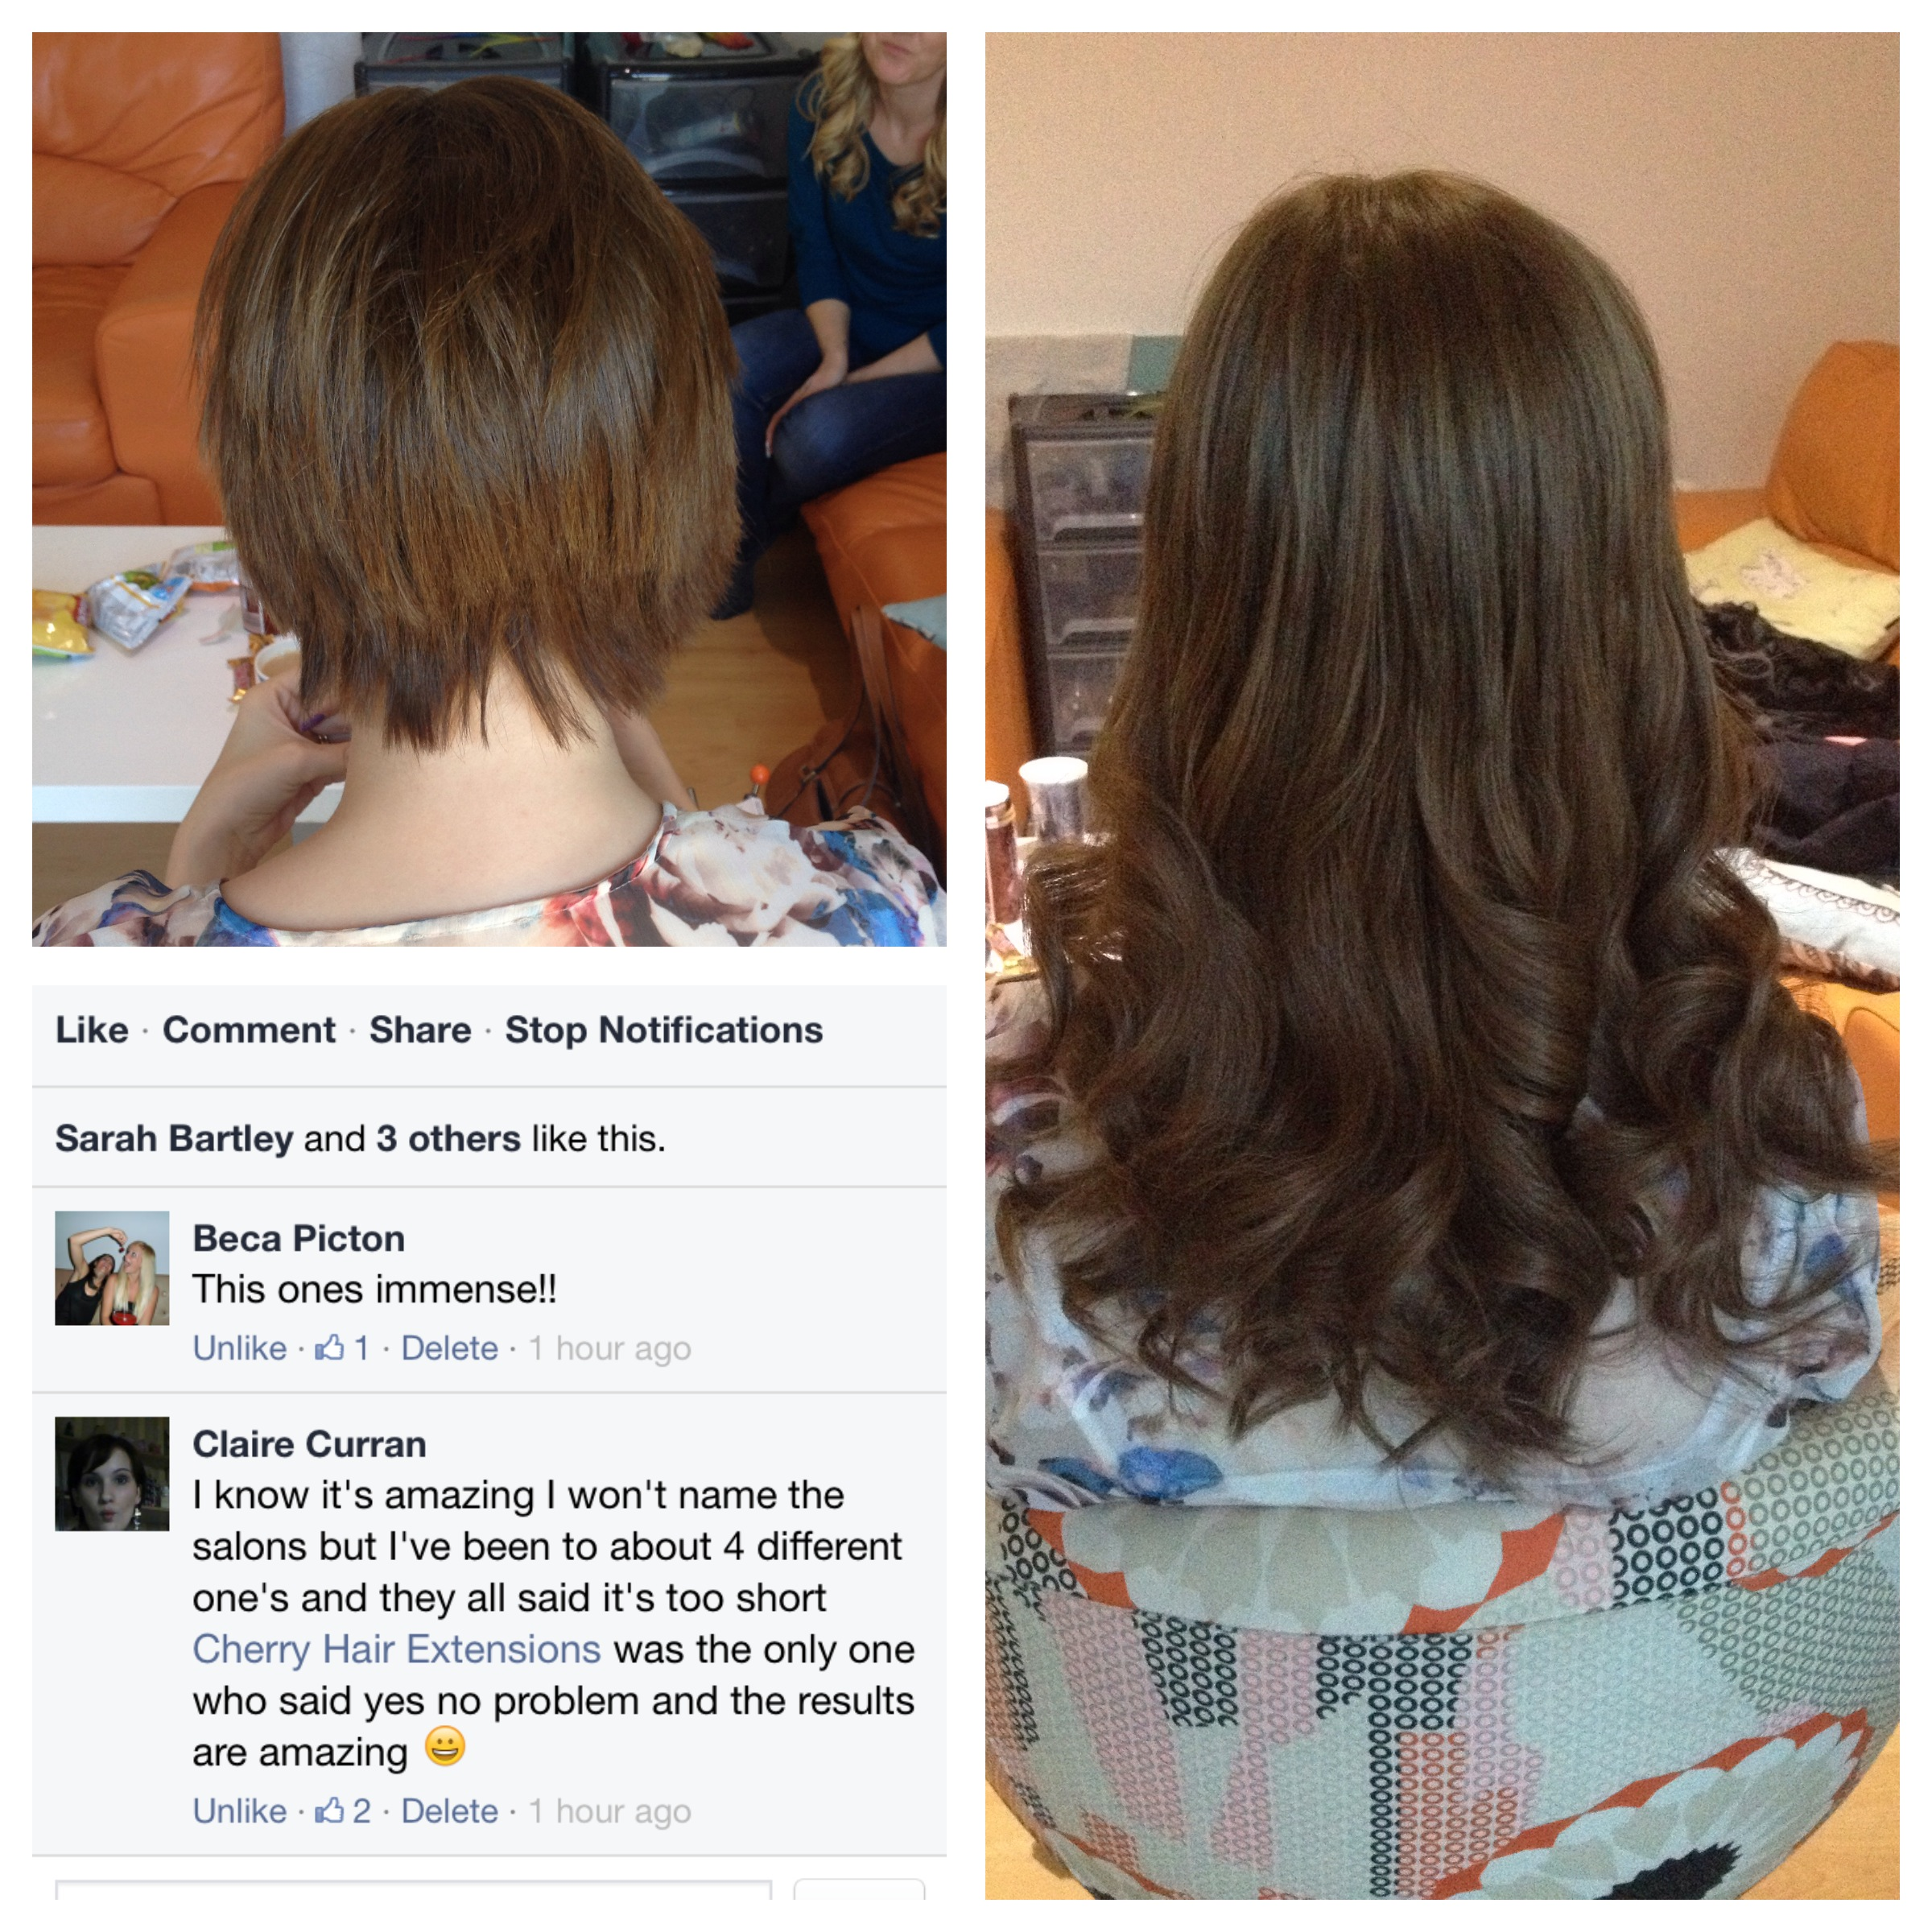 Claire Cherry Hair Extensions